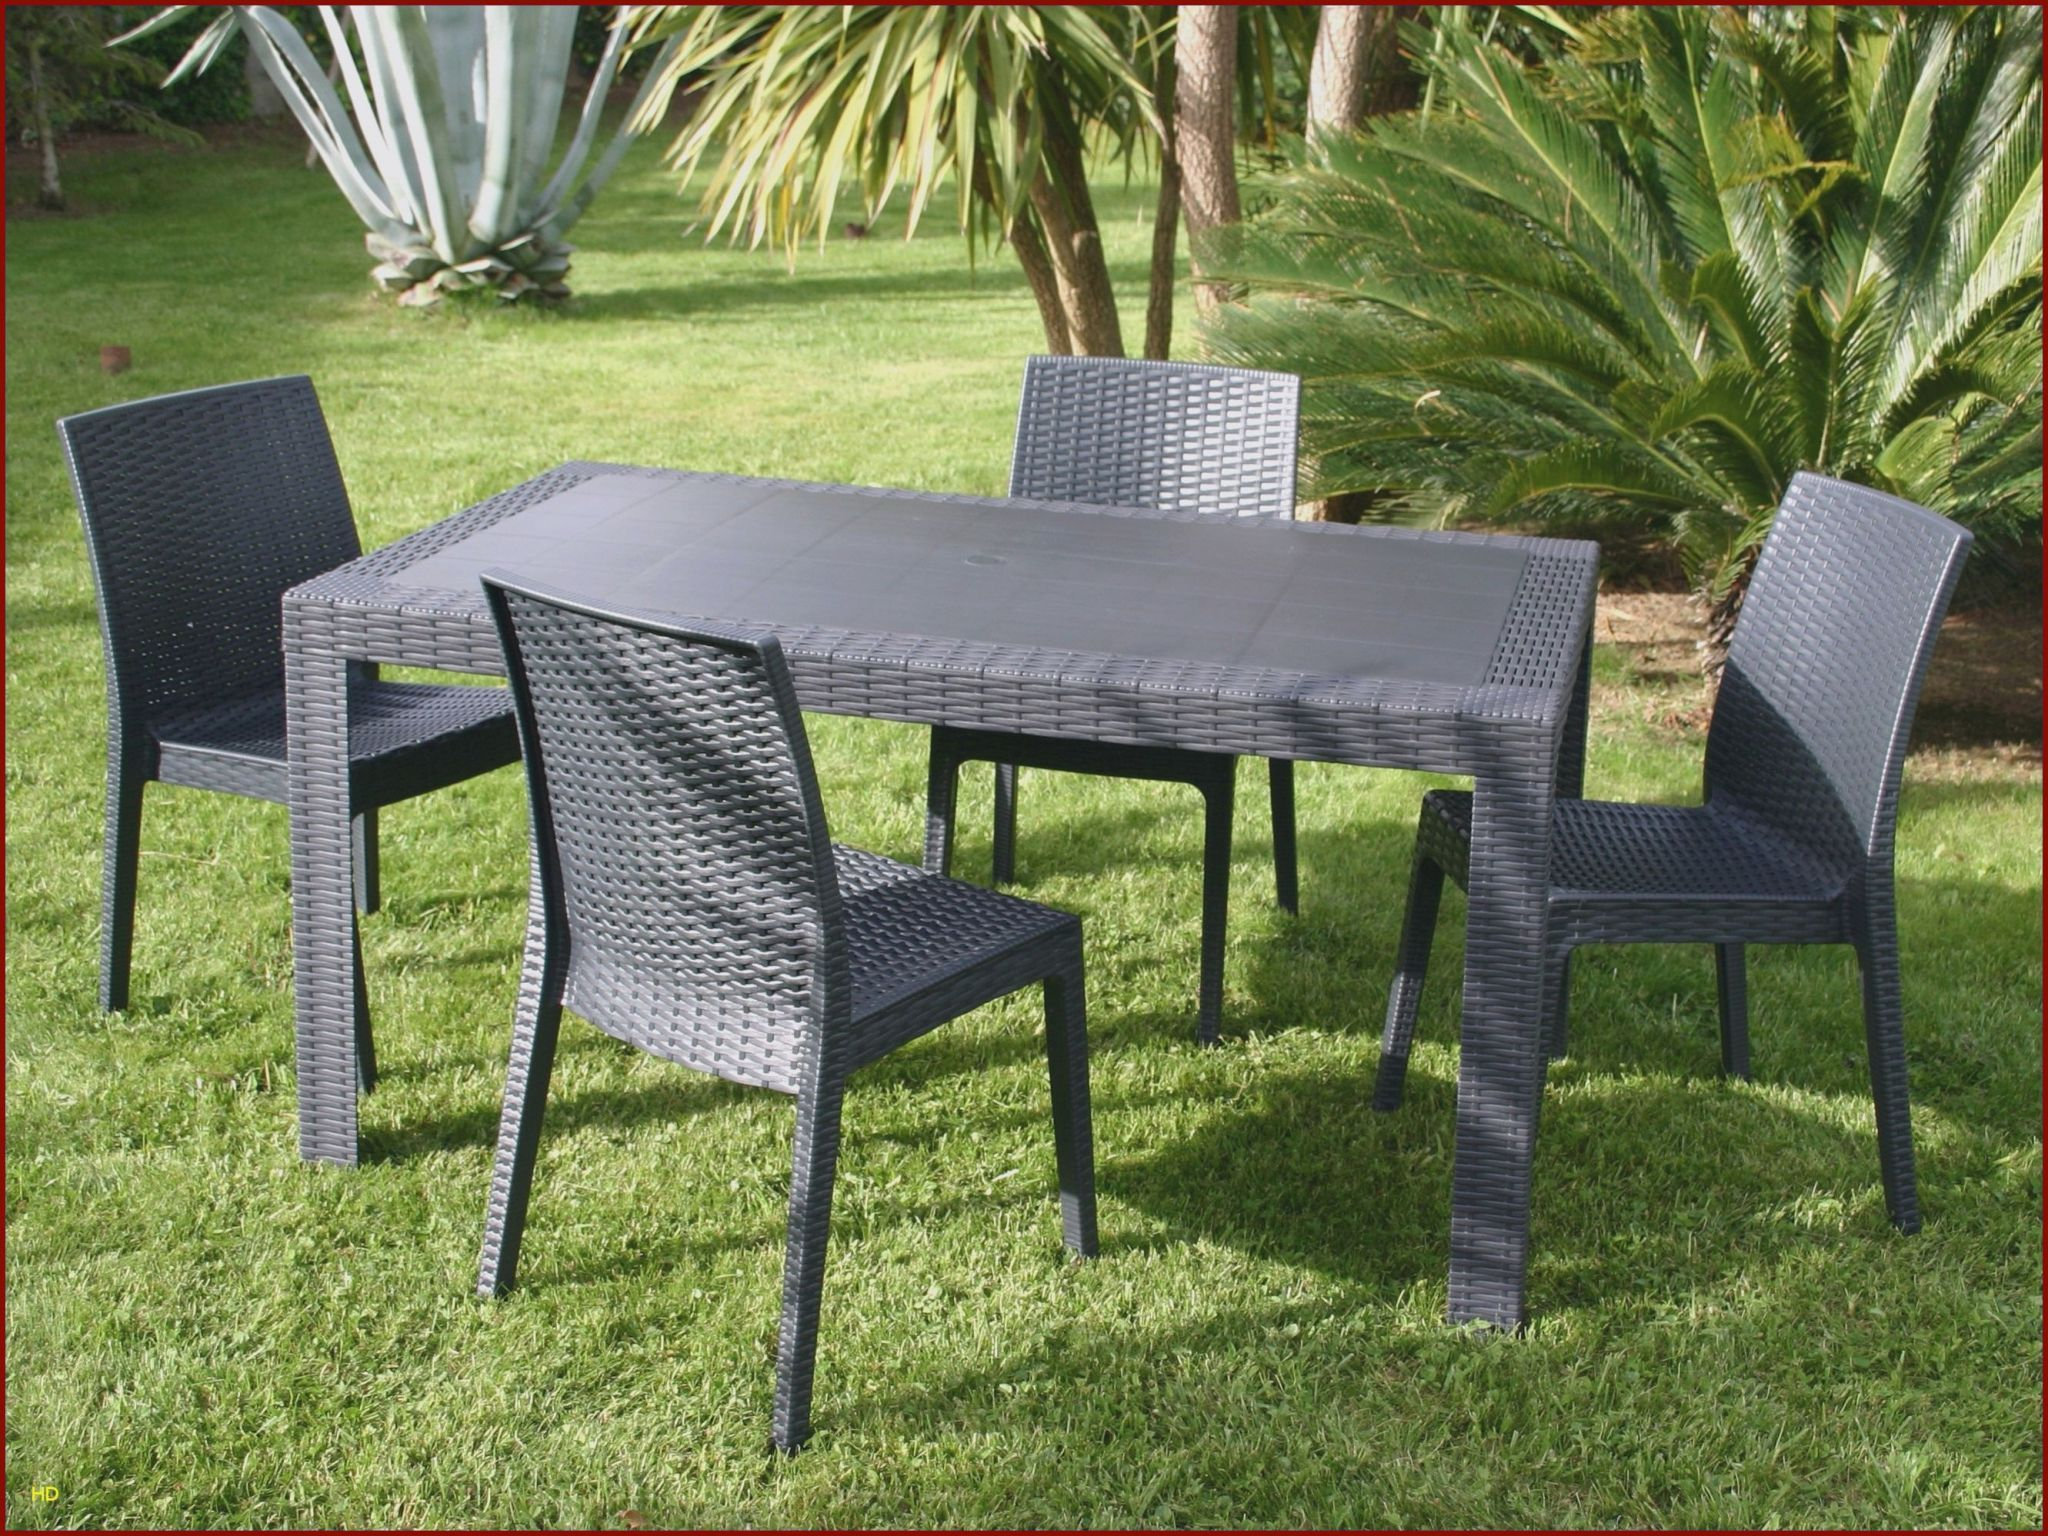 Soldes Mobilier Jardin Beau Chaises Luxe Chaise Ice 0d Table Jardin Resine Lovely